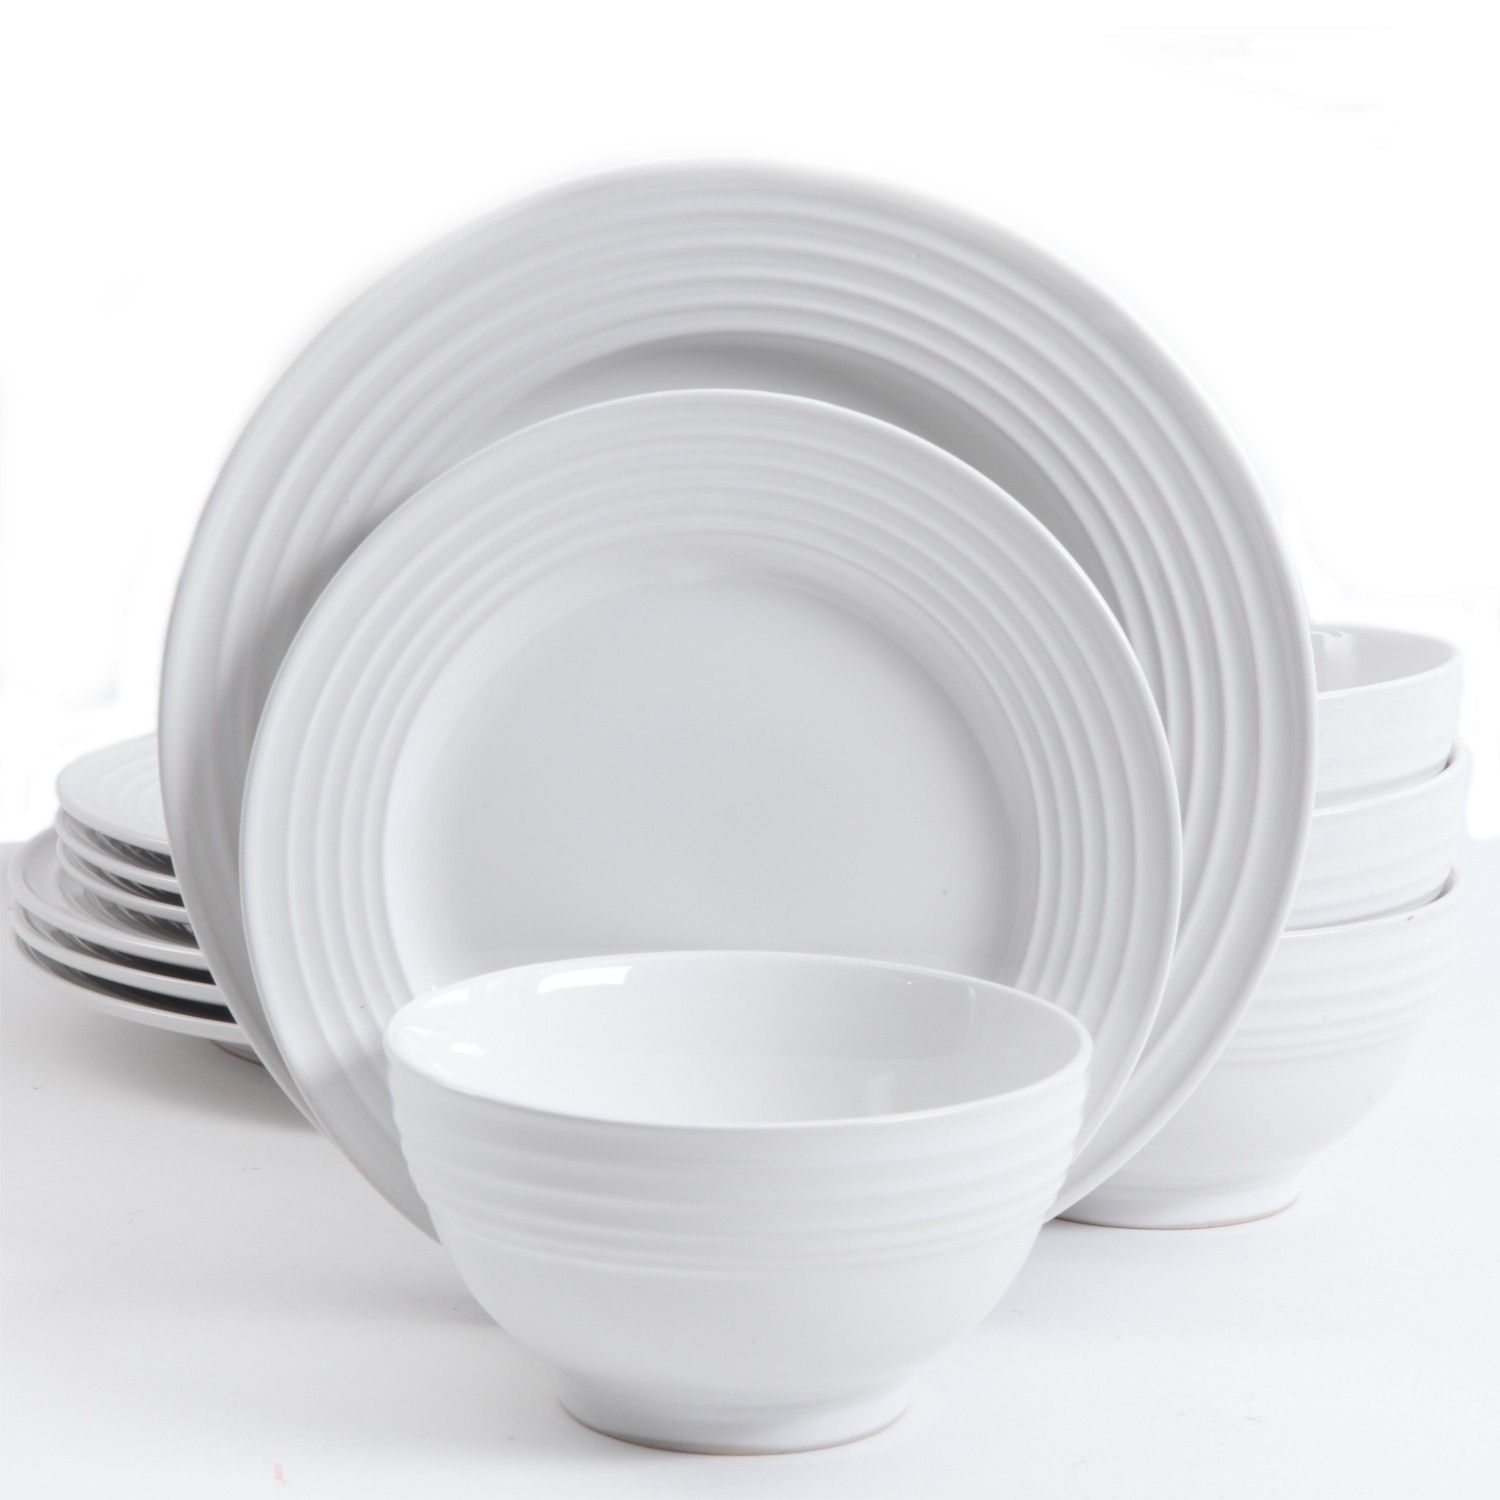 Gibson Home Plaza Cafe 12 Piece Dinnerware Set White Gibson Home Dinnerware Rustic Dinnerware White dinnerware sets for 12